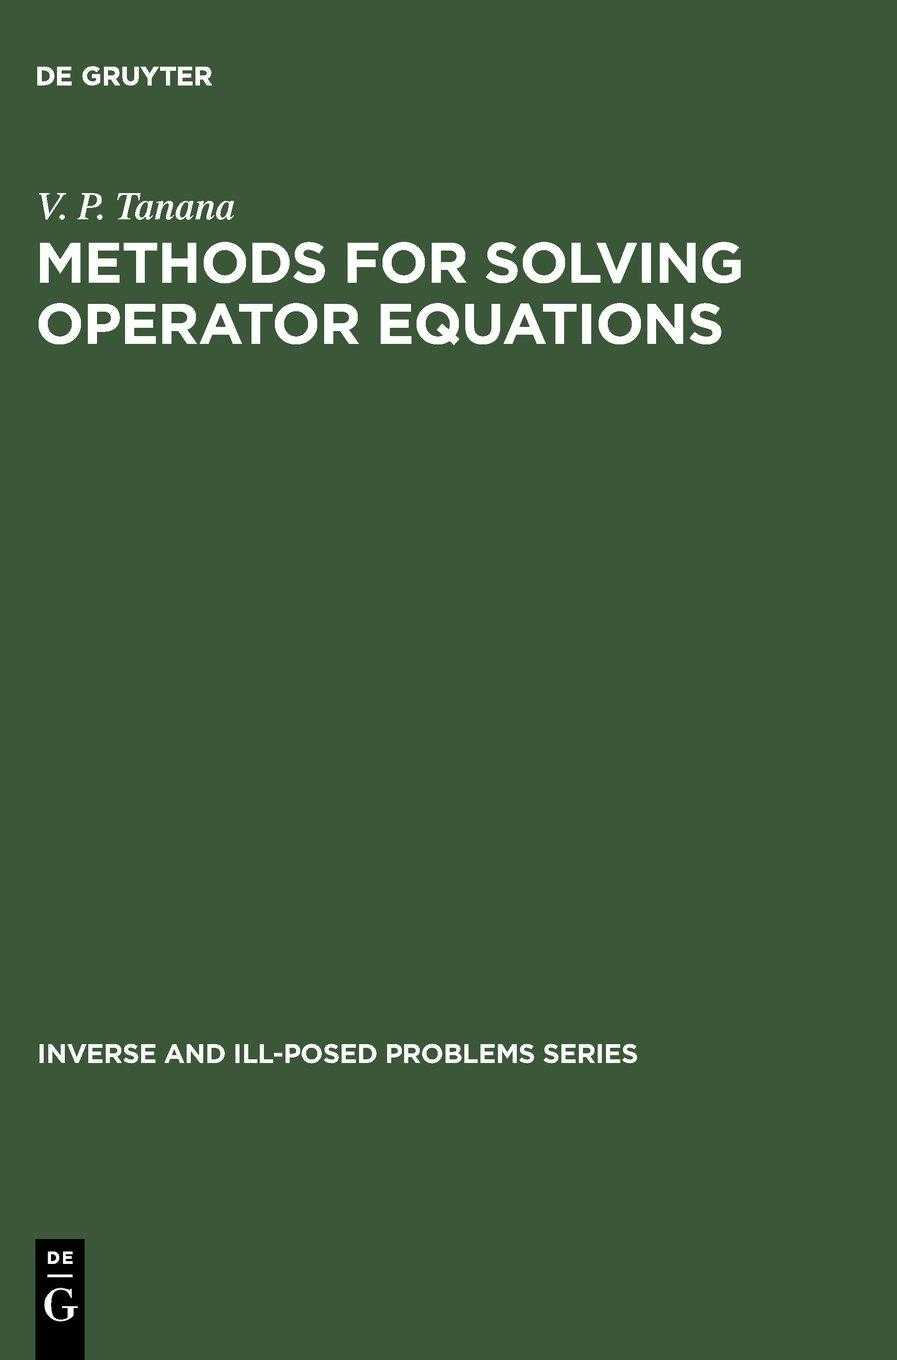 Methods for Solving Operator Equations (Inverse & Ill-posed Problems), Tanana, V.P.